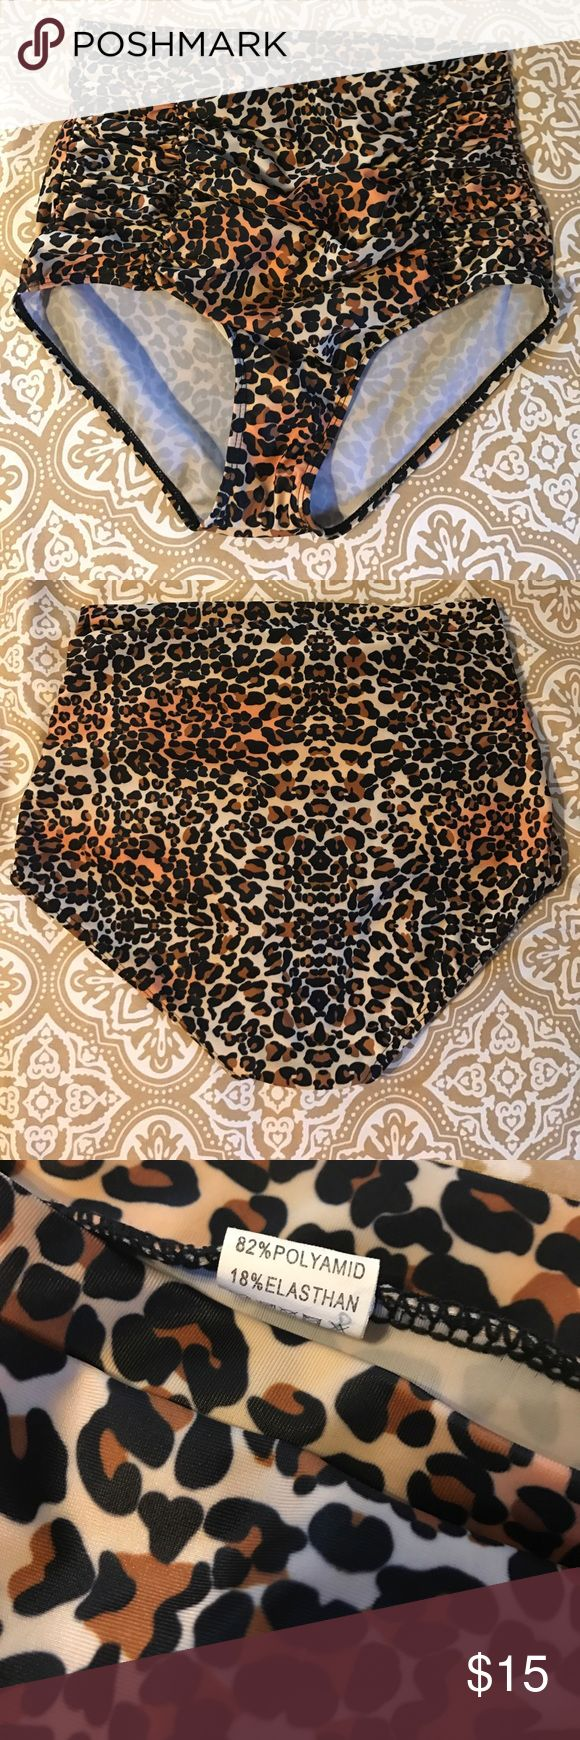 Leopard Animal Print High-Waisted Bikini Bottom Over the belly button, these high waisted bikini bottoms are sassy and sexy and with the scrunchy front, so very flattering! Pair them with a neon or solid top to turn heads & get TONS of compliments. Size is XL, but fit more like an M (8/10) - these are truly stunning & SLIMMING and will make you feel like a million bucks while soakin' up the sun! ☀️ Swim Bikinis